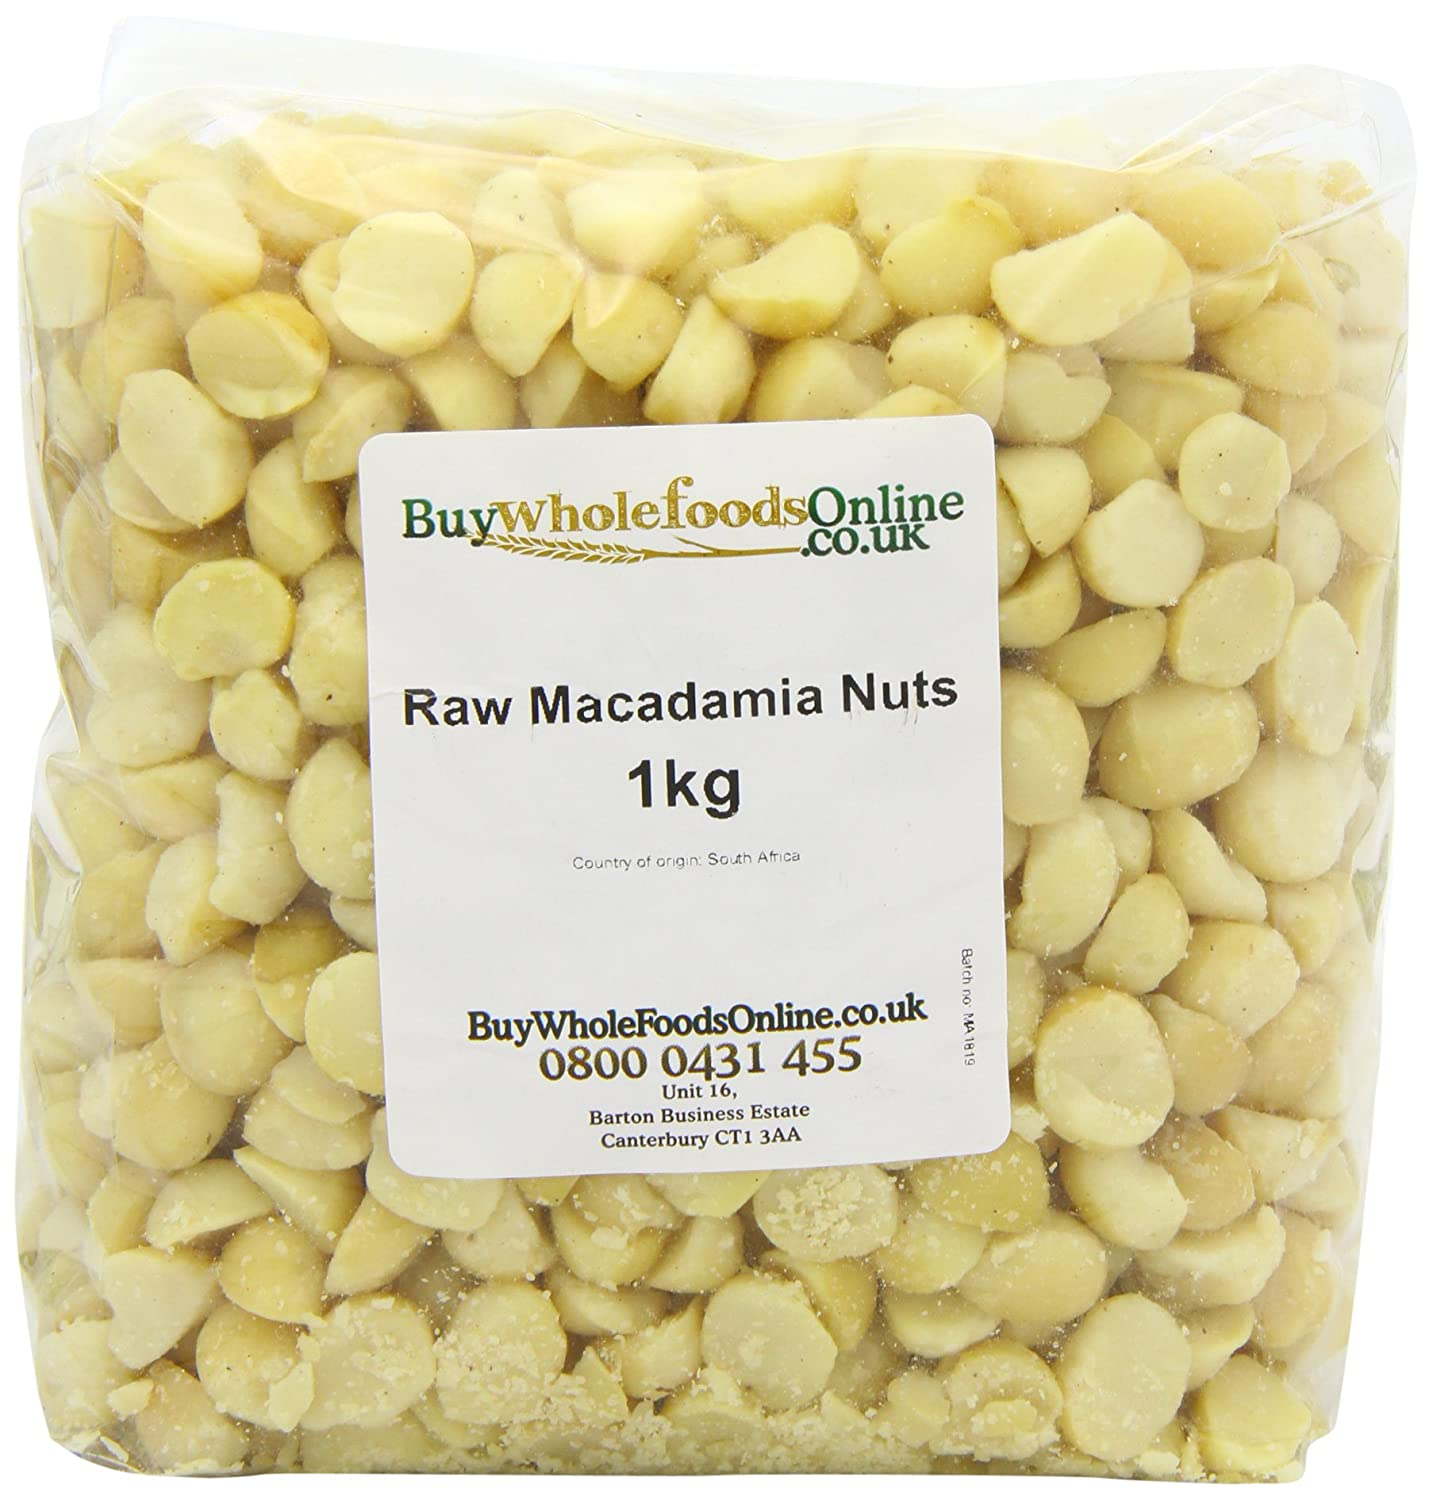 Buy Whole Foods Online Macadamia Nuts Whole Raw, 1 Kg